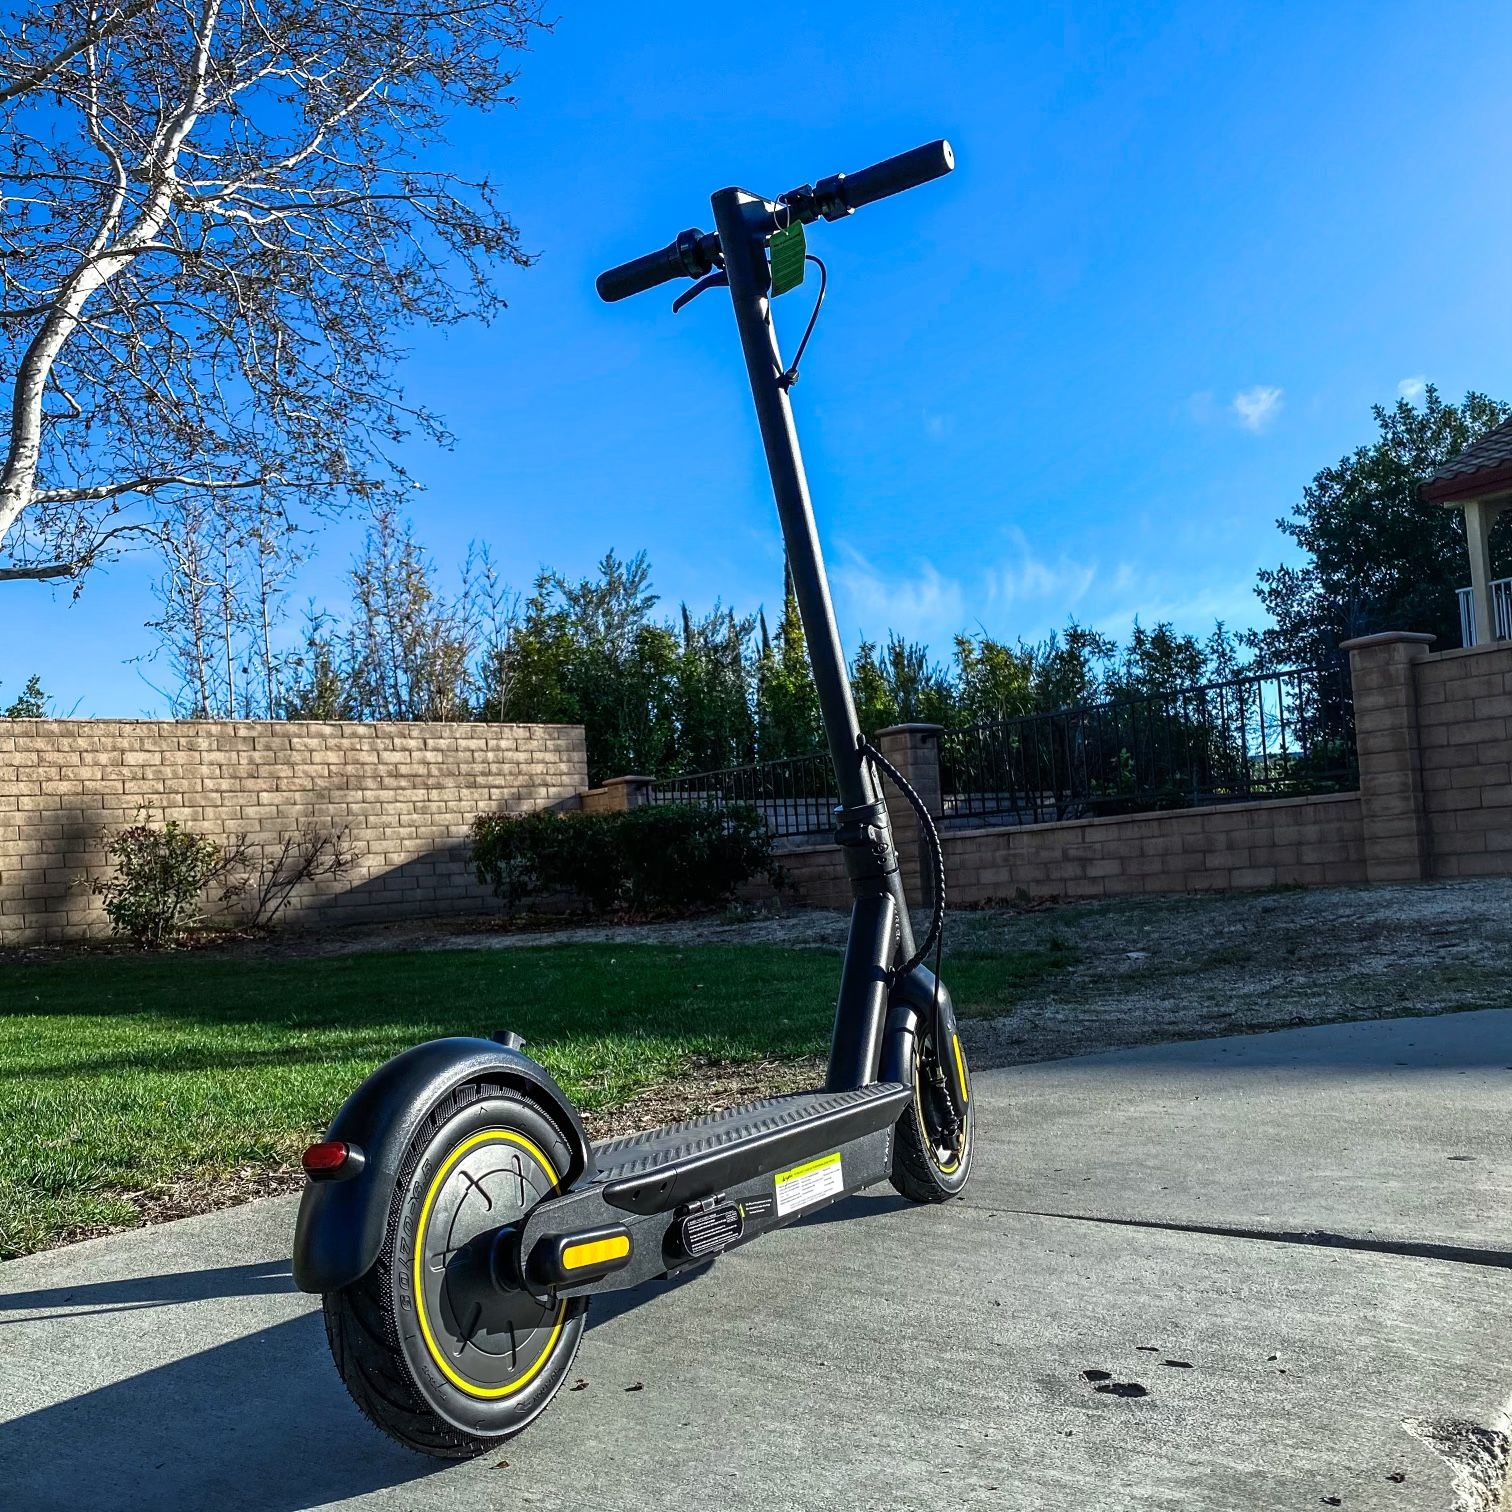 2022 Heavy Duty Pro Electric Scooter/18.6 mph and 39 miles distance/App Control/We Offer Warranty/Brand New In Box (WHOLE SALE PRICING)